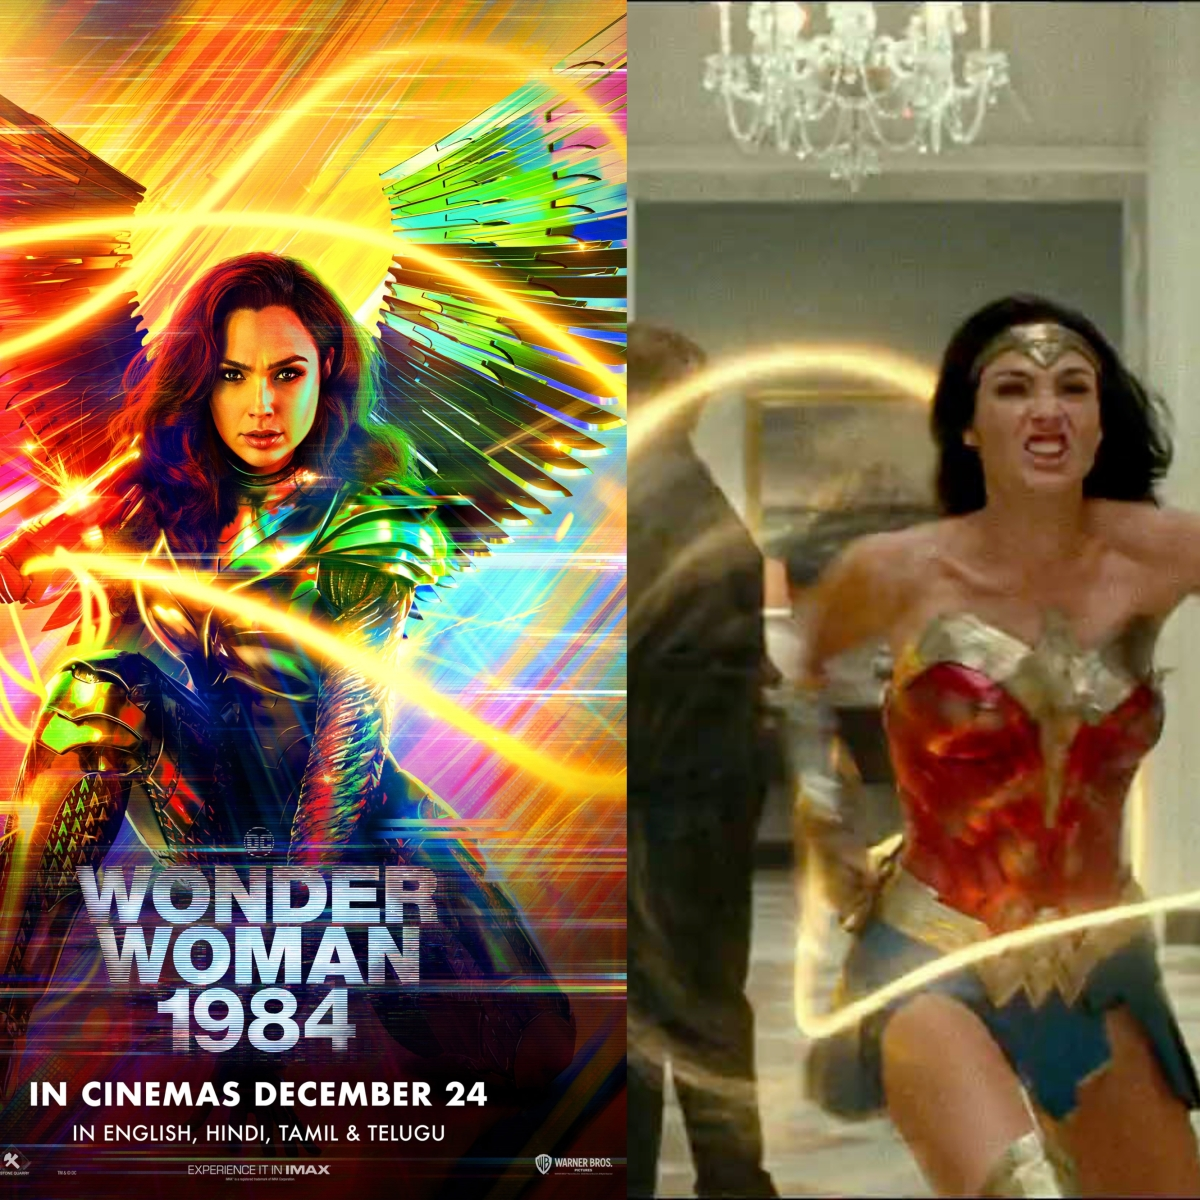 It's time for a hero! Warner Bros. Pictures to release Wonder Woman 1984 pan India on Dec 24